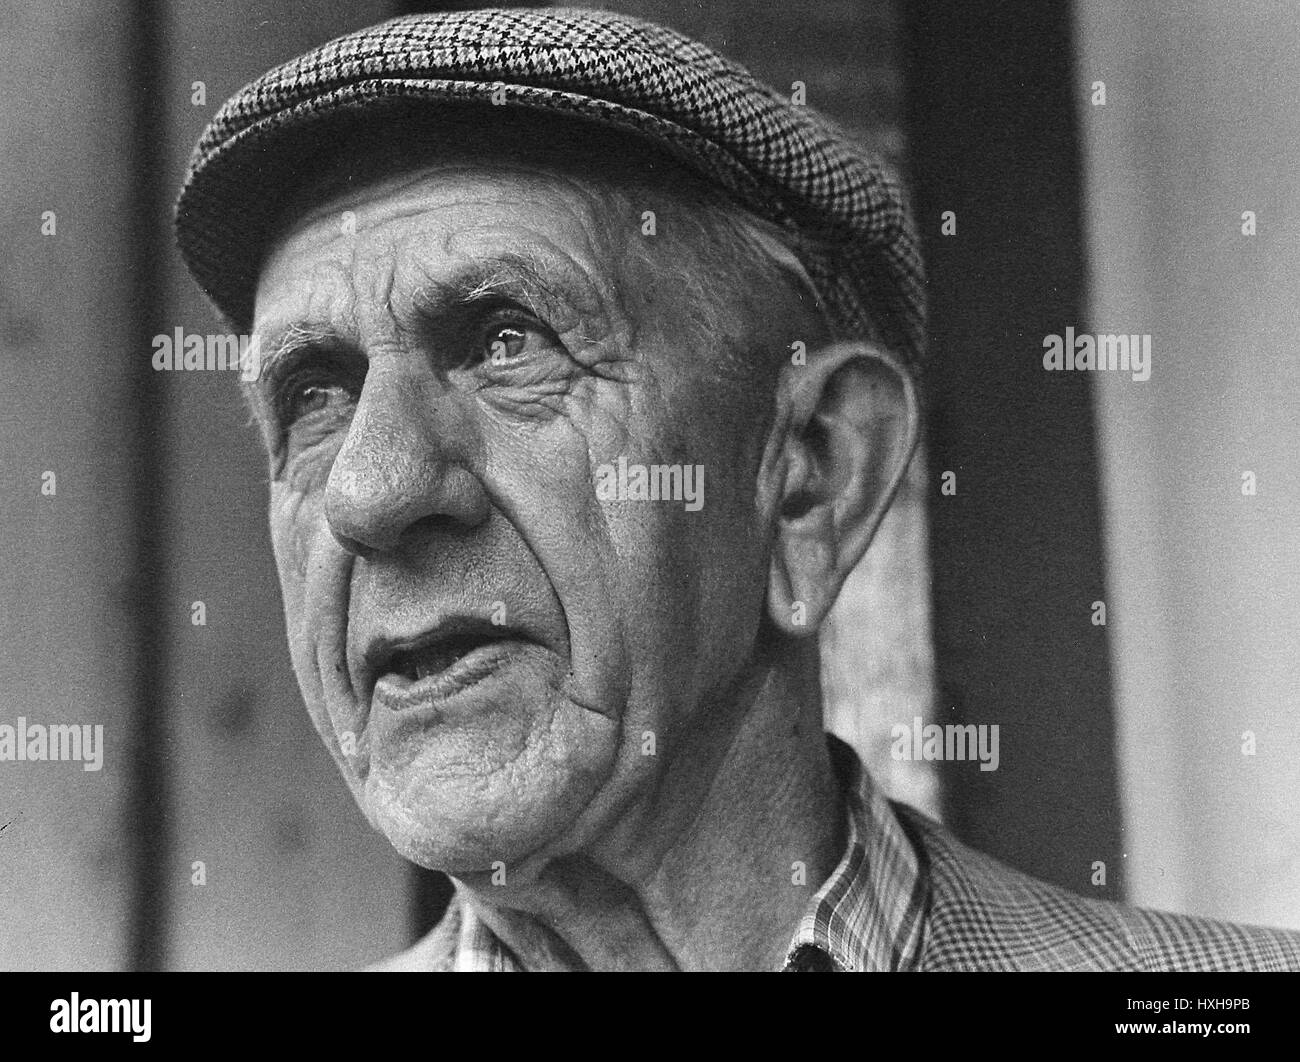 OLD MAN WITH FLAT CAP NORTH YORKSHIRE ENGLAND 01 January 1970 Stock ... 910774b57c7